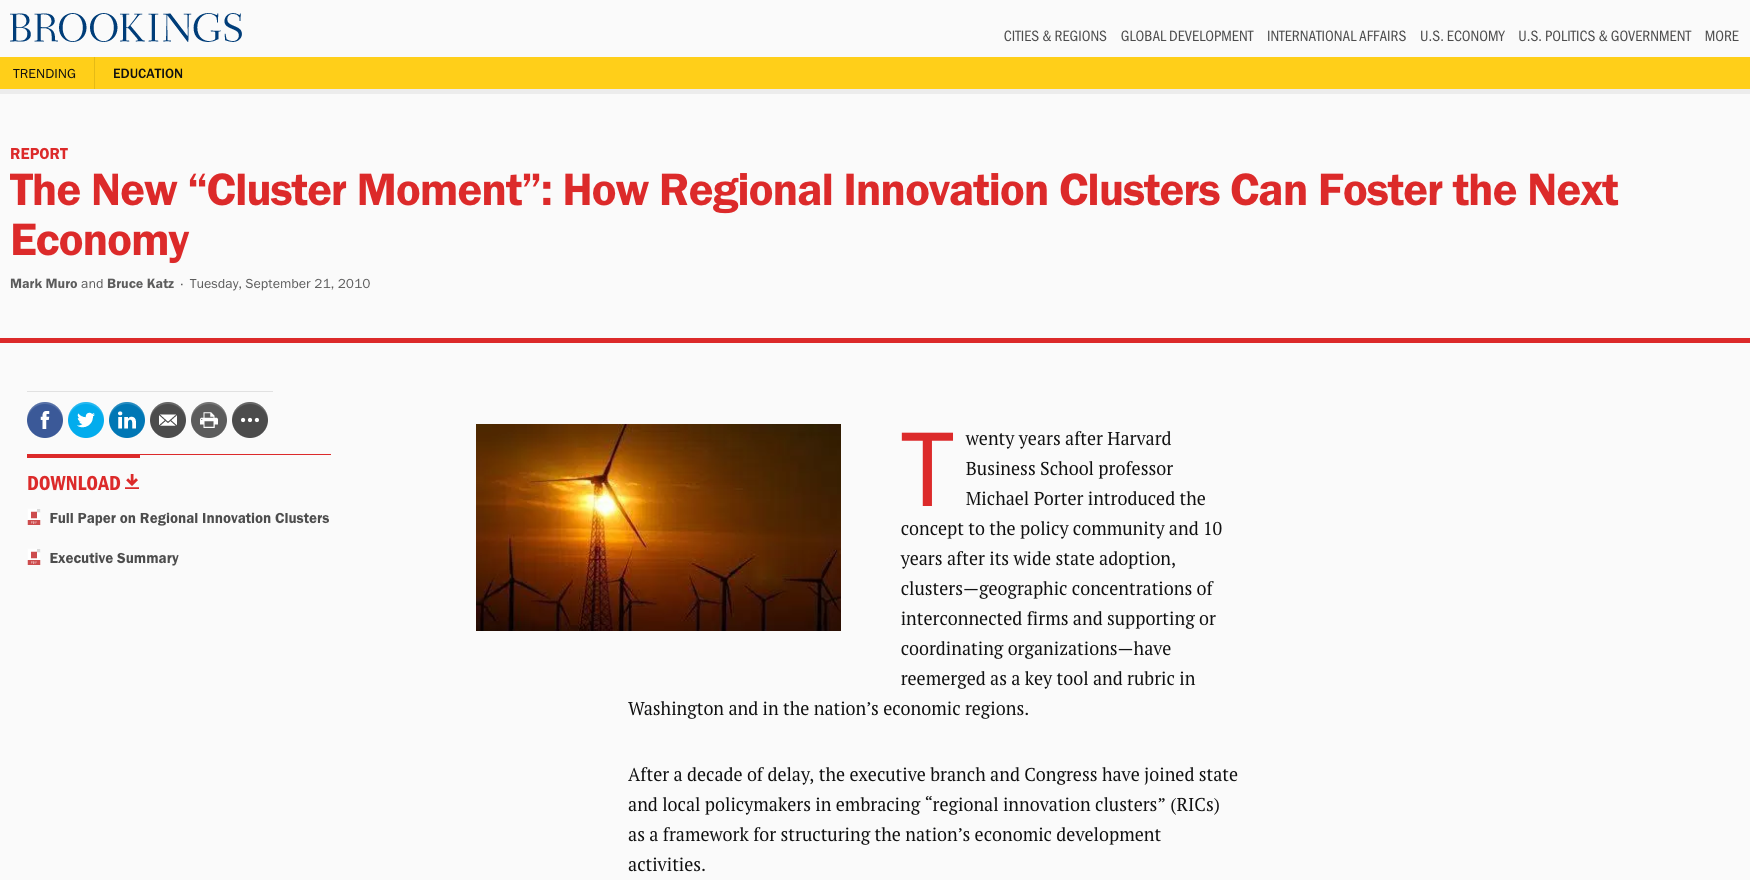 """Further Reading:The New """"Cluster Moment"""": How Regional Innovation Clusters Can Foster the Next Economy (Brookings)"""